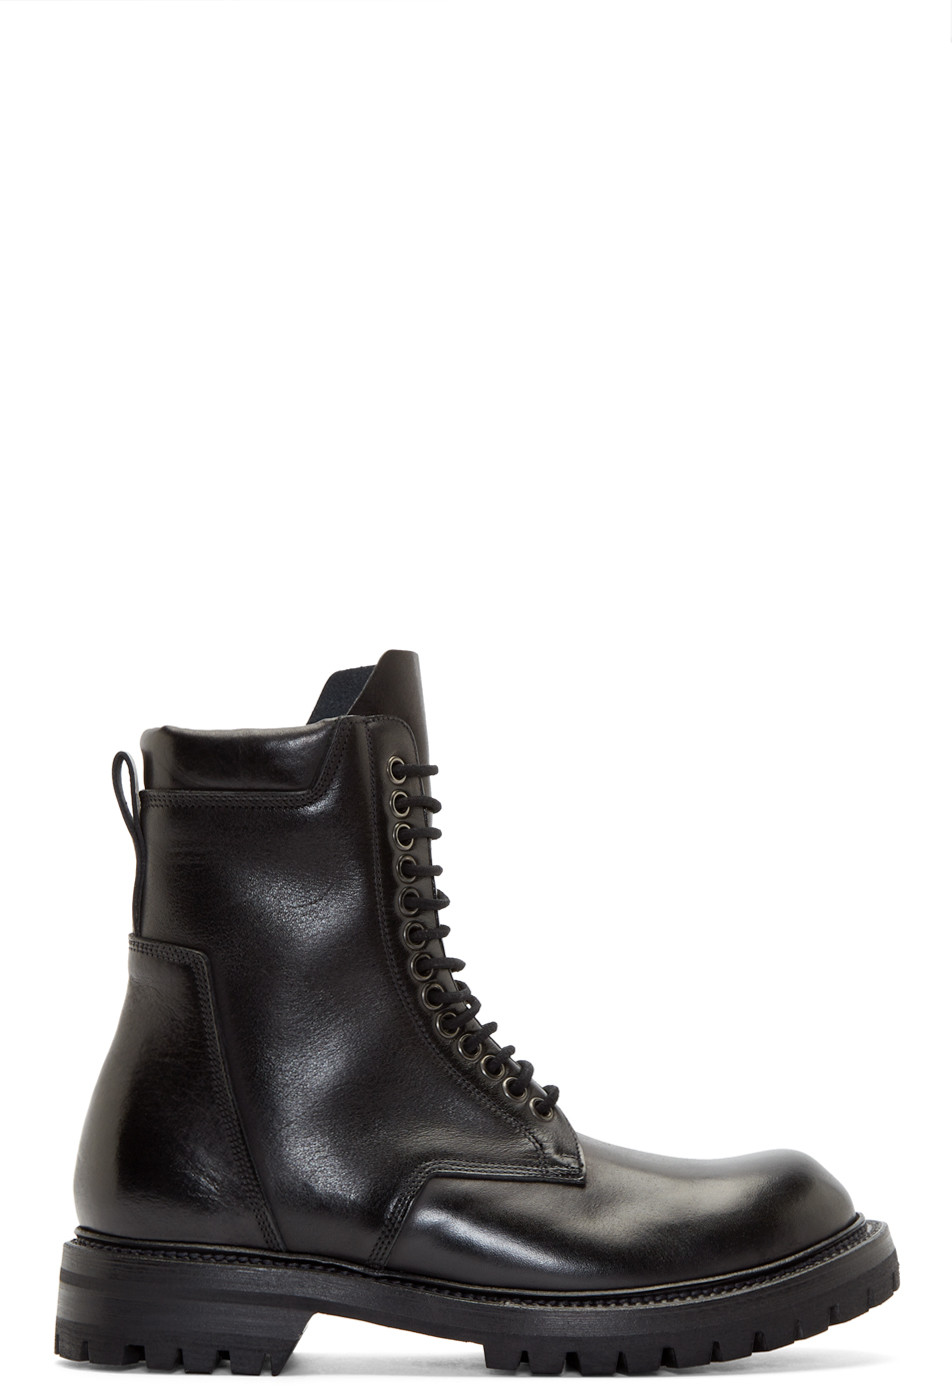 Men'S Chunky Wrap-Around Army Boots In Black